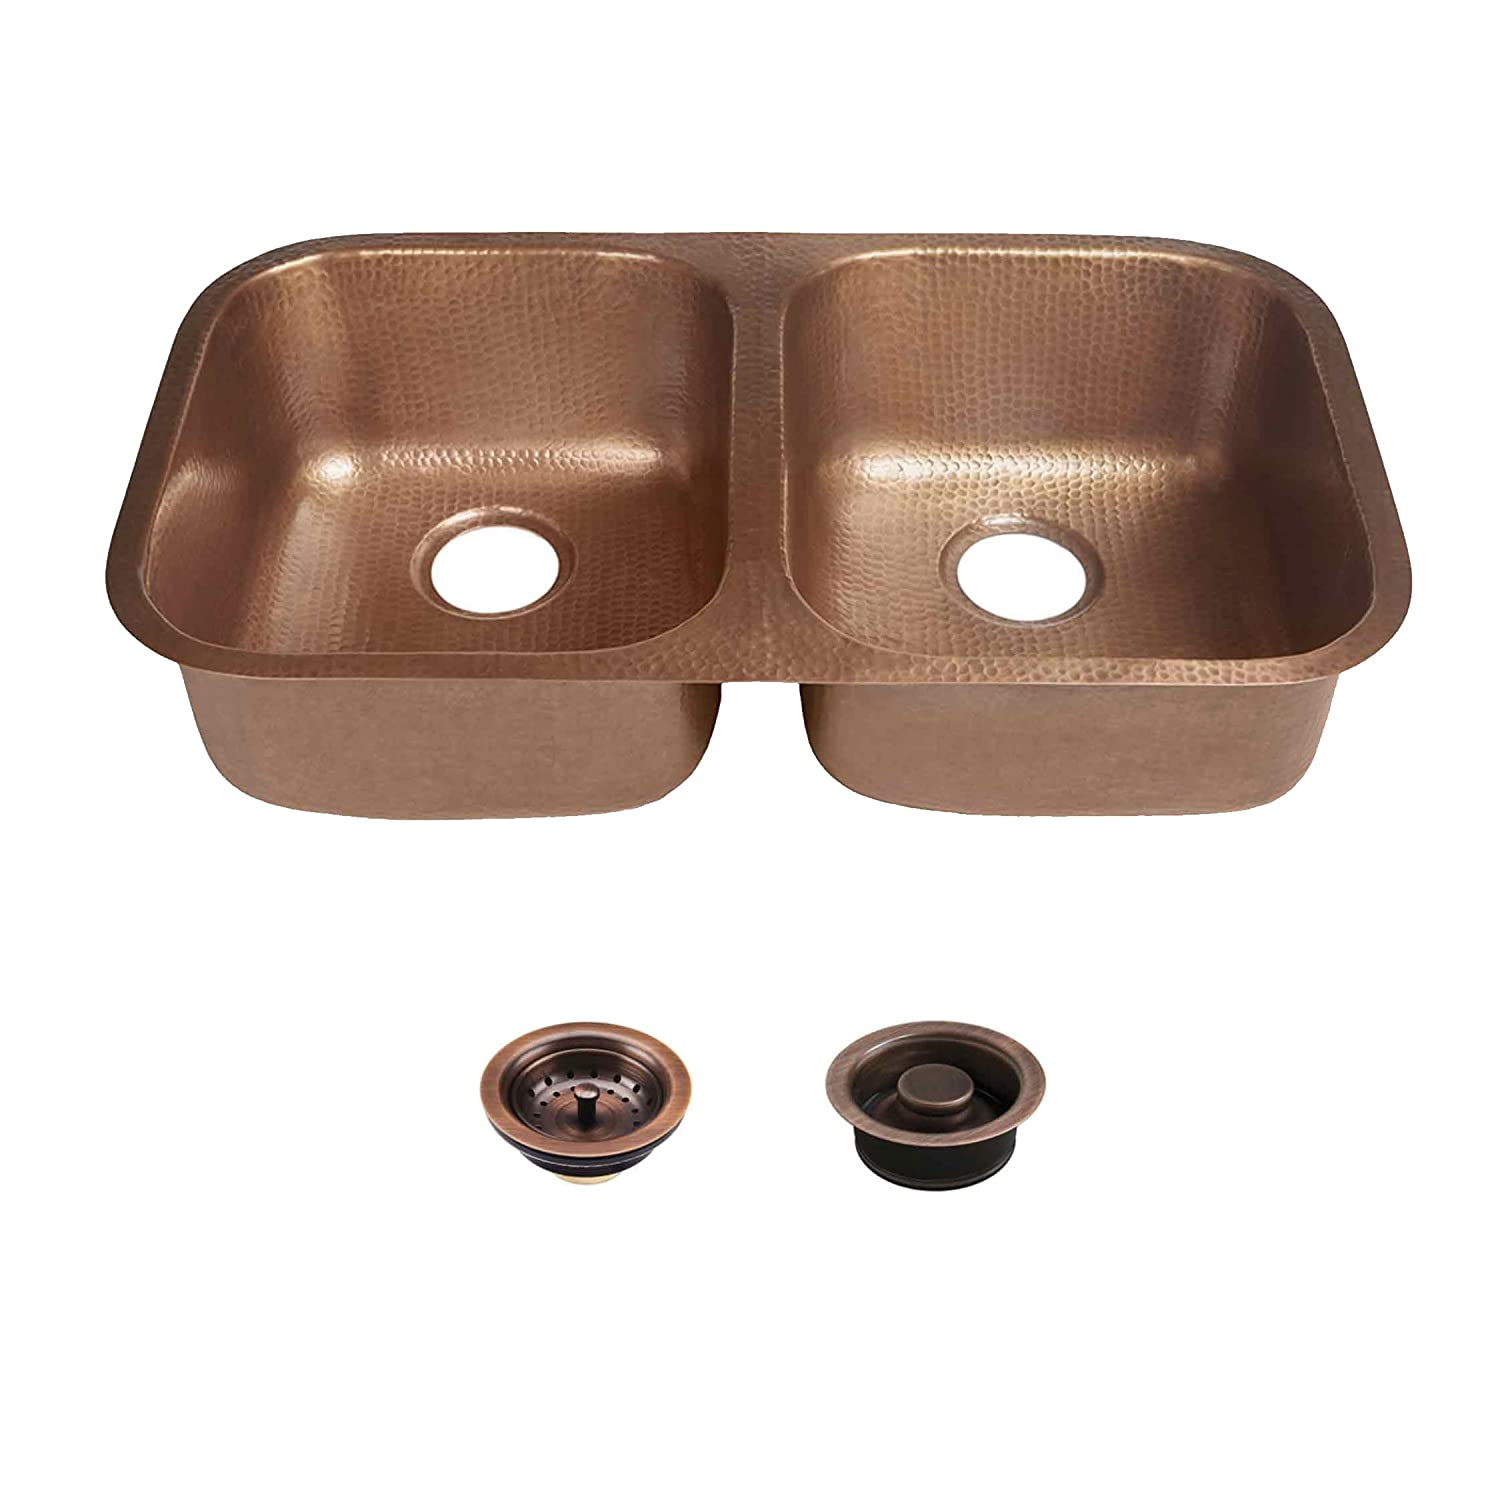 "Sinkology SK205-32AC-AMZ-BD Kandinsky Copper Undermount Kitchen Sink Kit with Strainer Drain and Disposal Flange 32.25"" x 18.5"" x 8"" Antique"